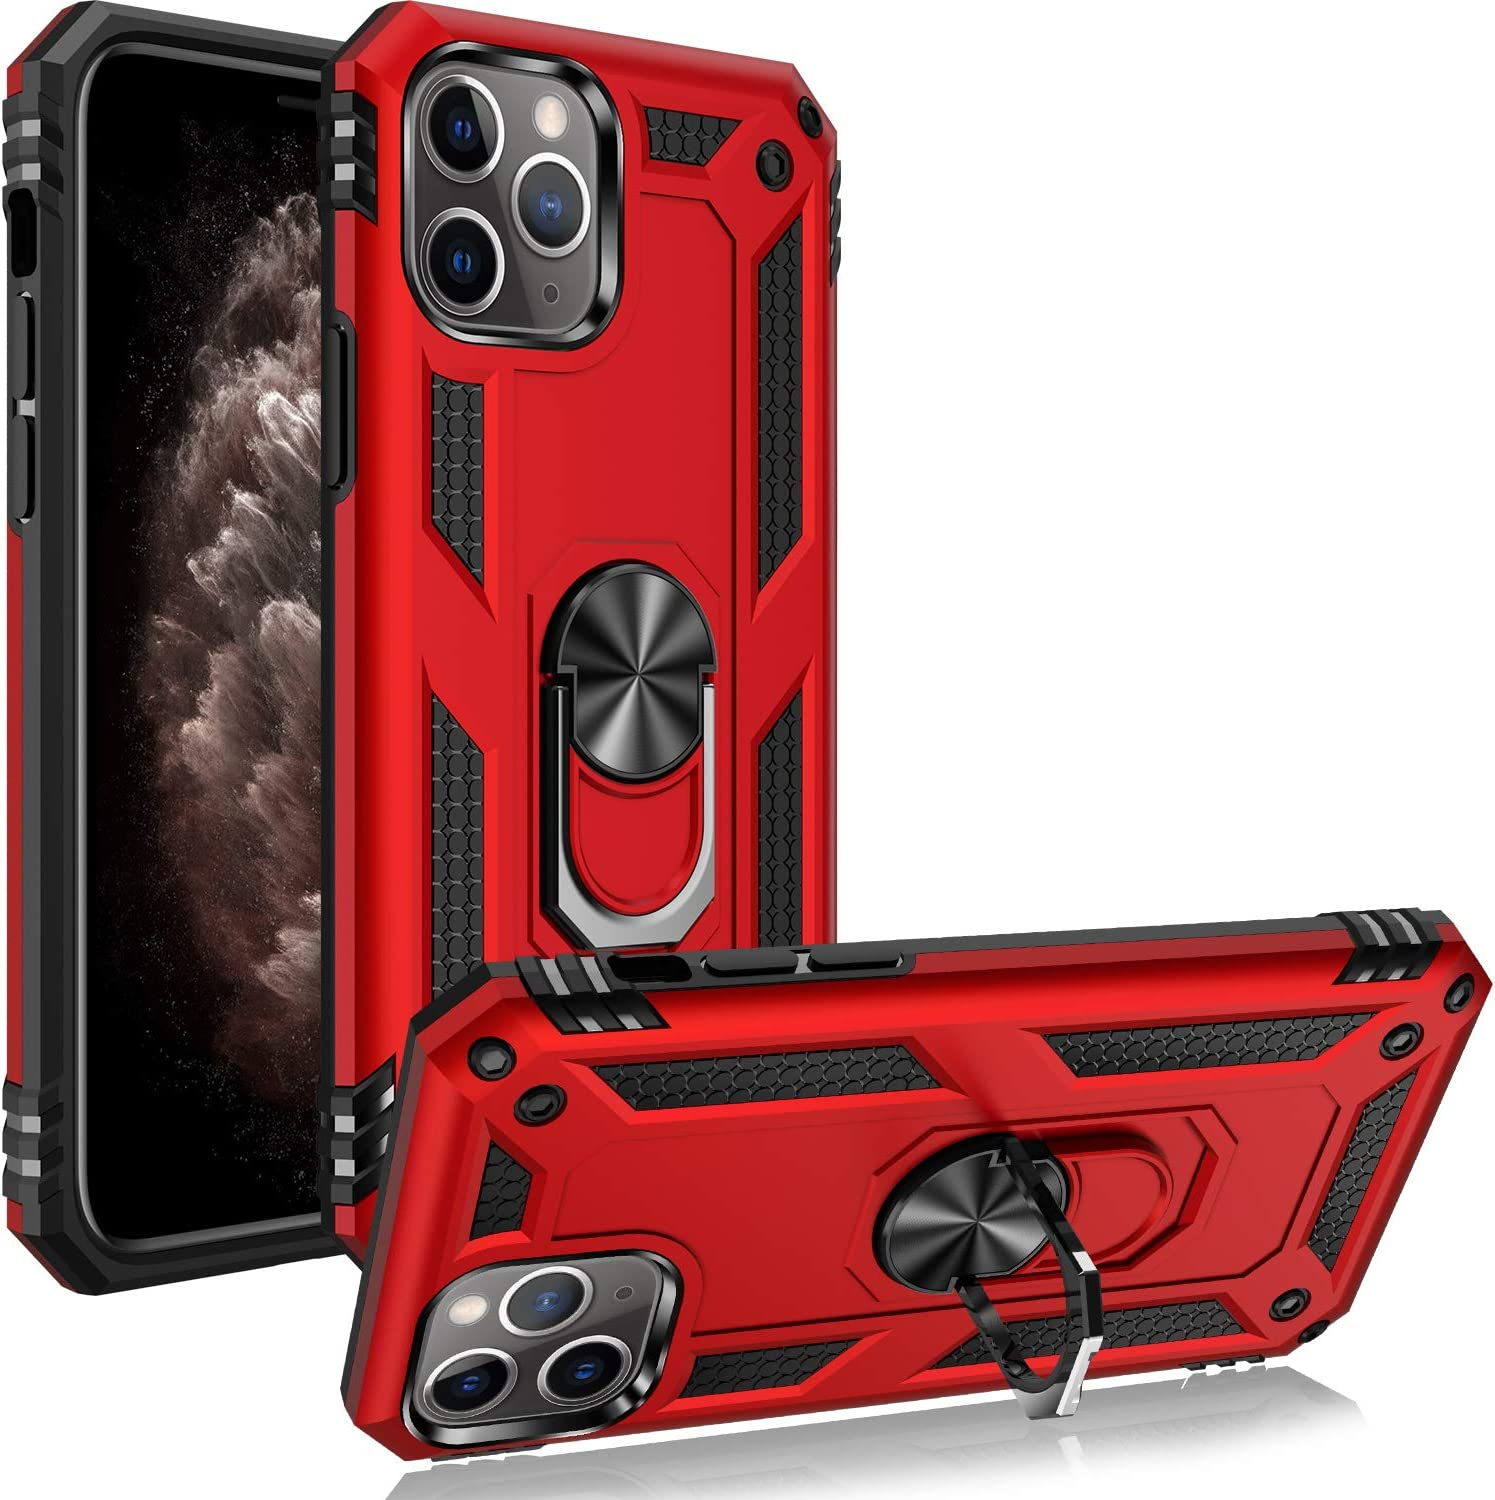 iPhone 11 pro Case 15ft Compatible for Apple iPhone 11 pro 5.8 Inch-Red Drop Tested Protective Case Military Grade Kickstand